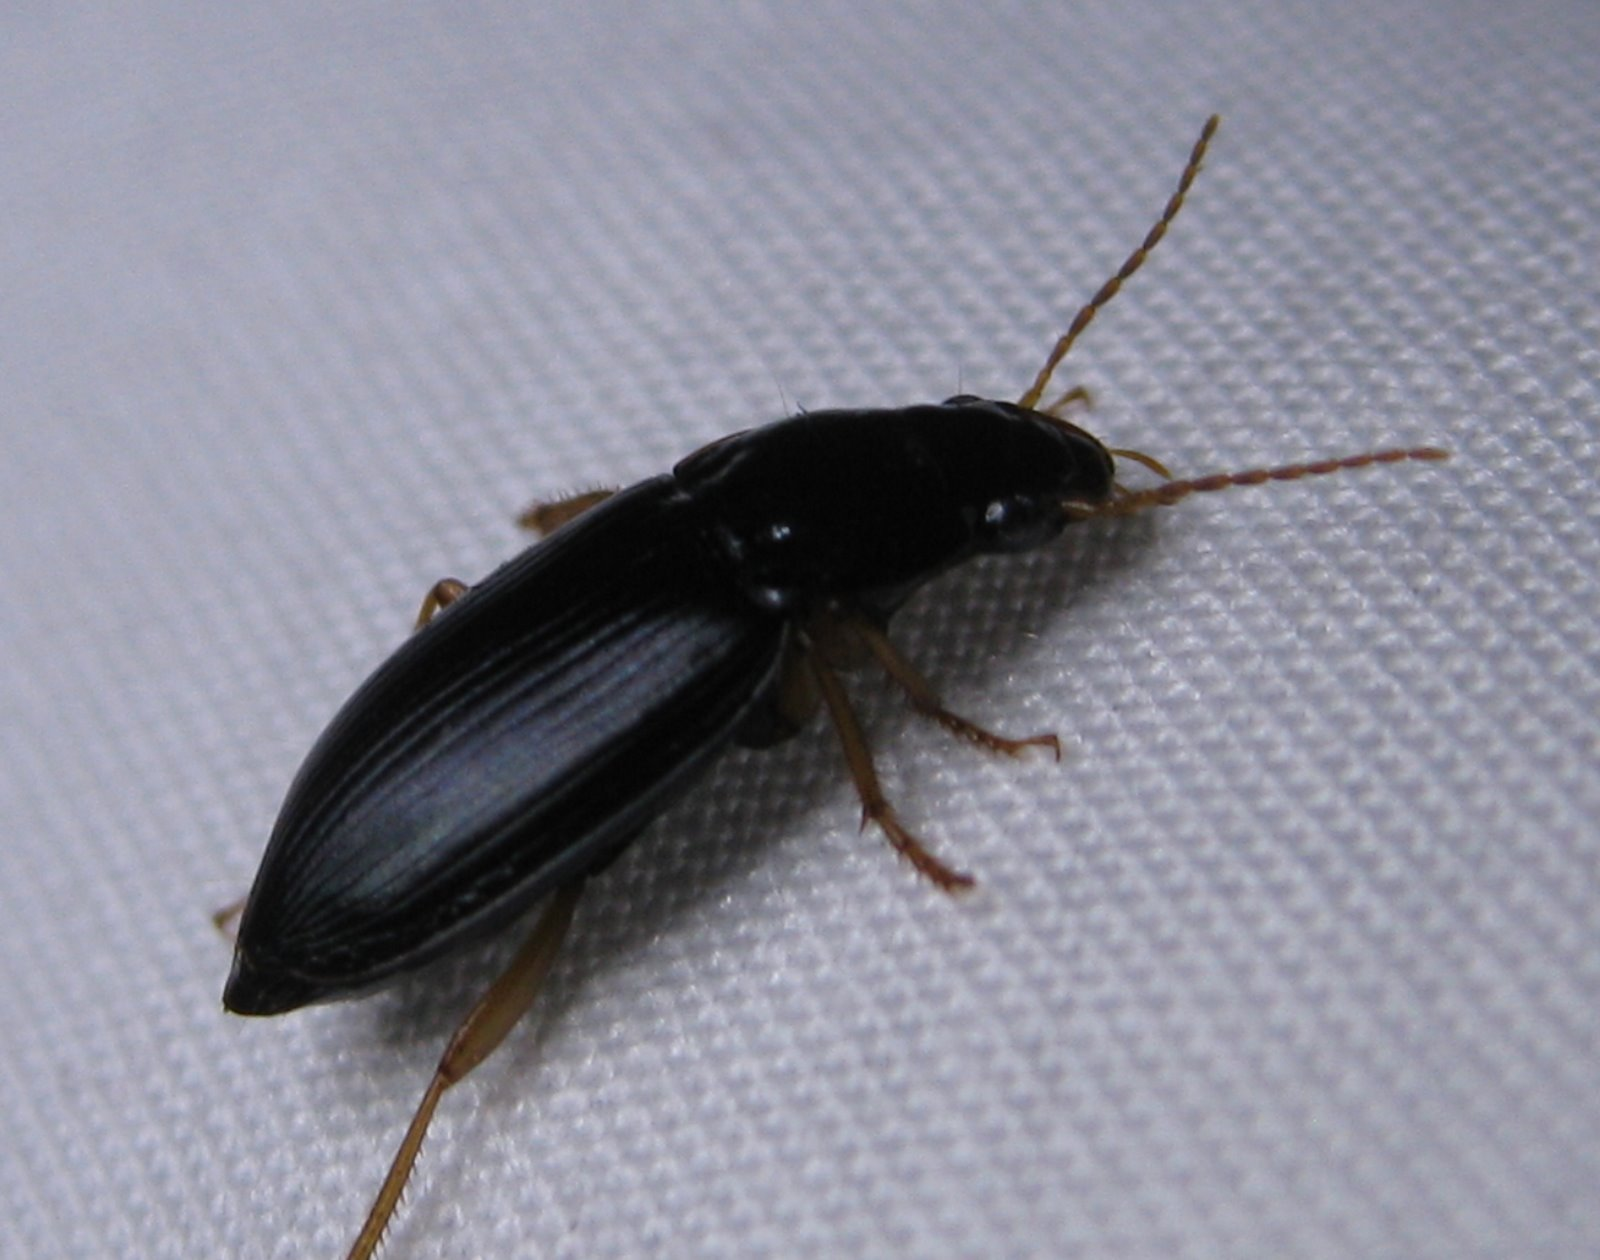 Little Black Jumping Bugs In My Bed Amazing Bedroom Living Room  Tiny Black  Bugs Found. Tiny Black Bugs In Bed